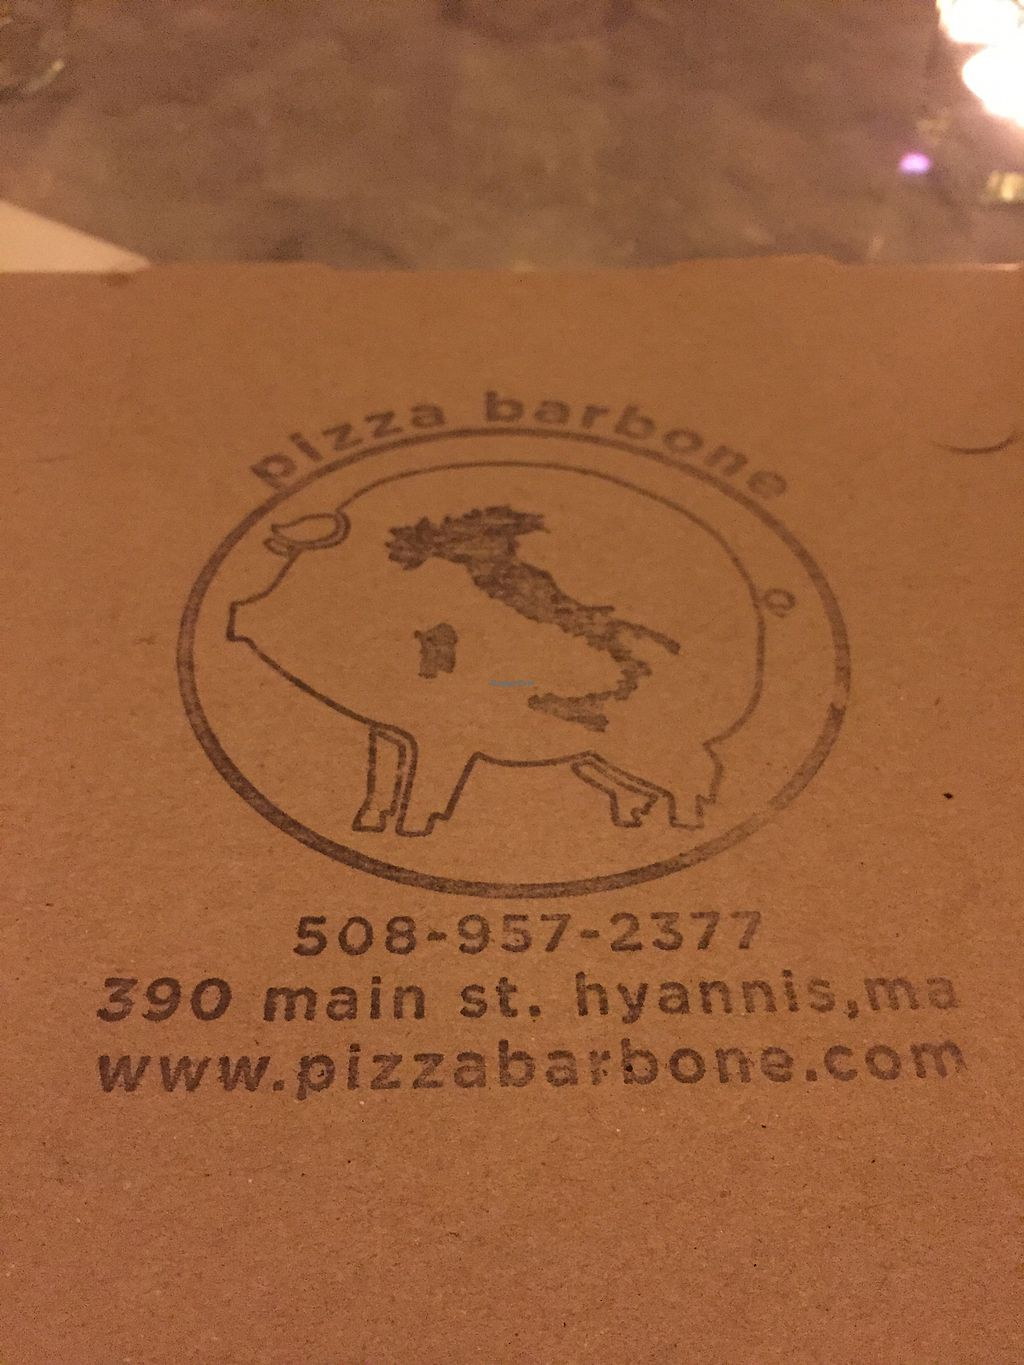 """Photo of Pizza Barbone  by <a href=""""/members/profile/haleylikesspinach"""">haleylikesspinach</a> <br/>take out box  <br/> August 31, 2017  - <a href='/contact/abuse/image/68305/299249'>Report</a>"""